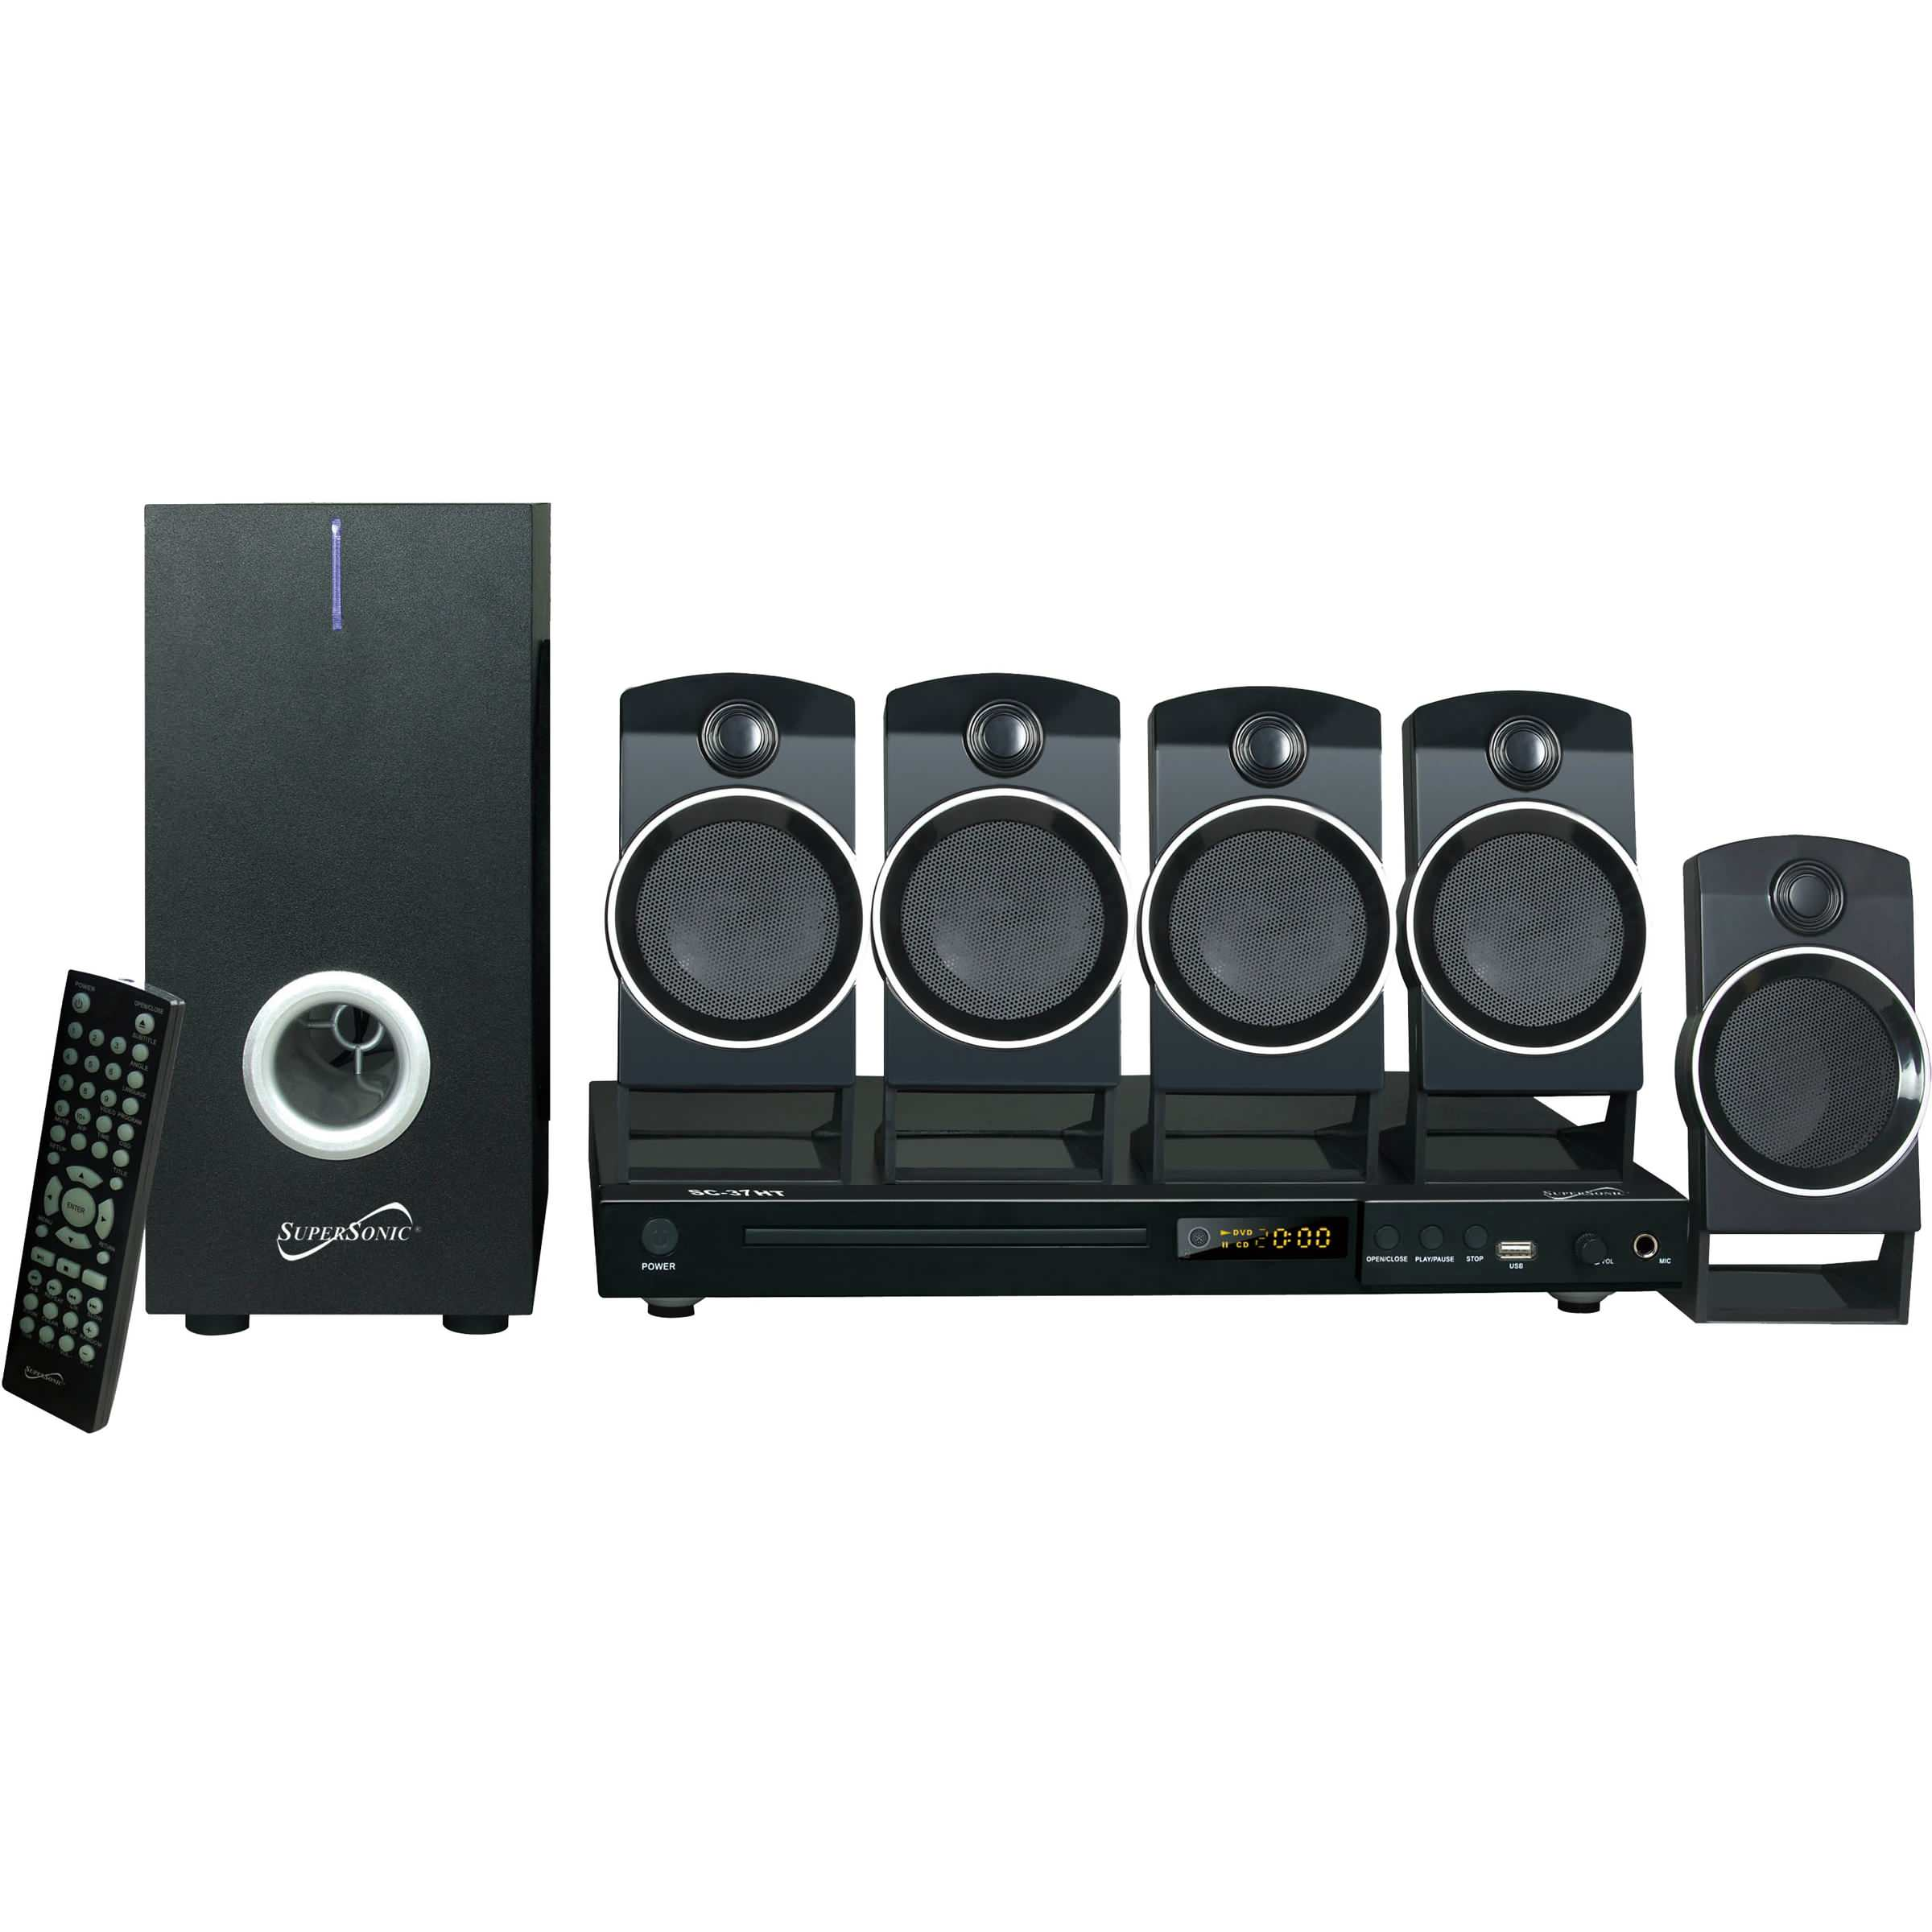 5.1 Channel DVD Home Theater System by Supersonic